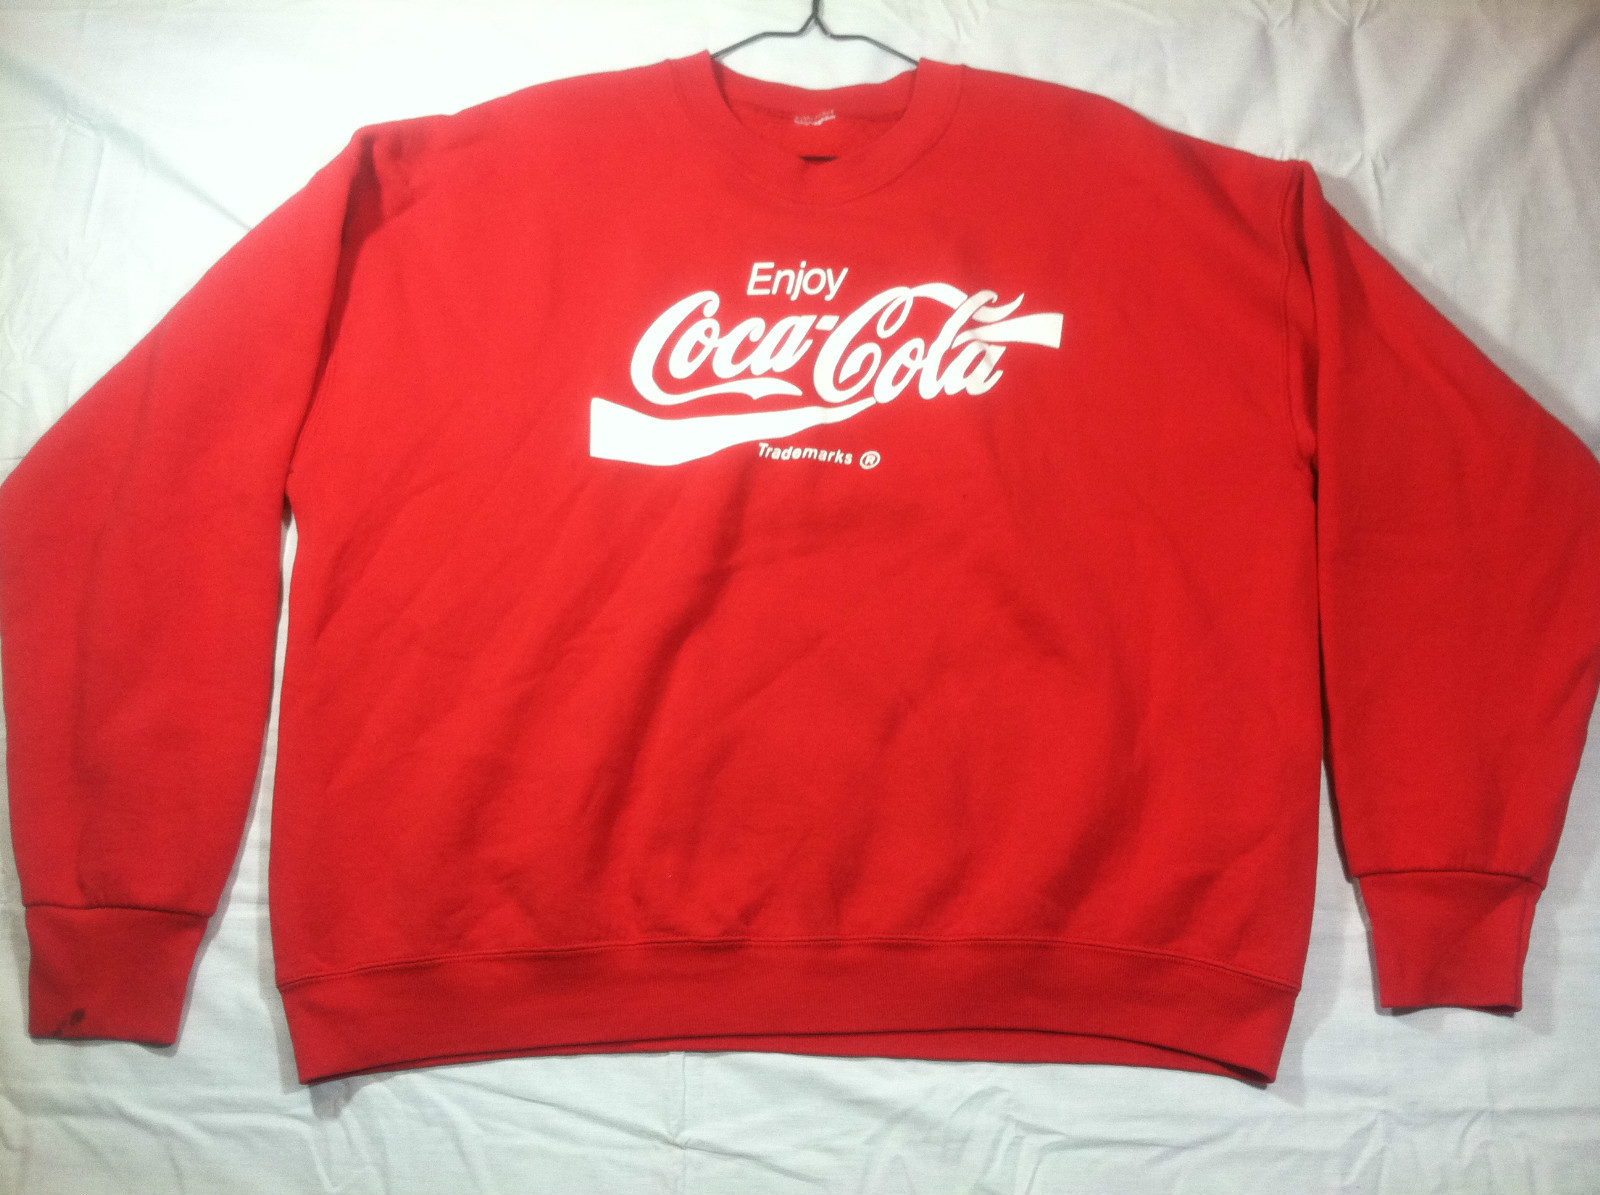 Vtg 90s coca cola enjoy classic coke sweatshirt indie mens red